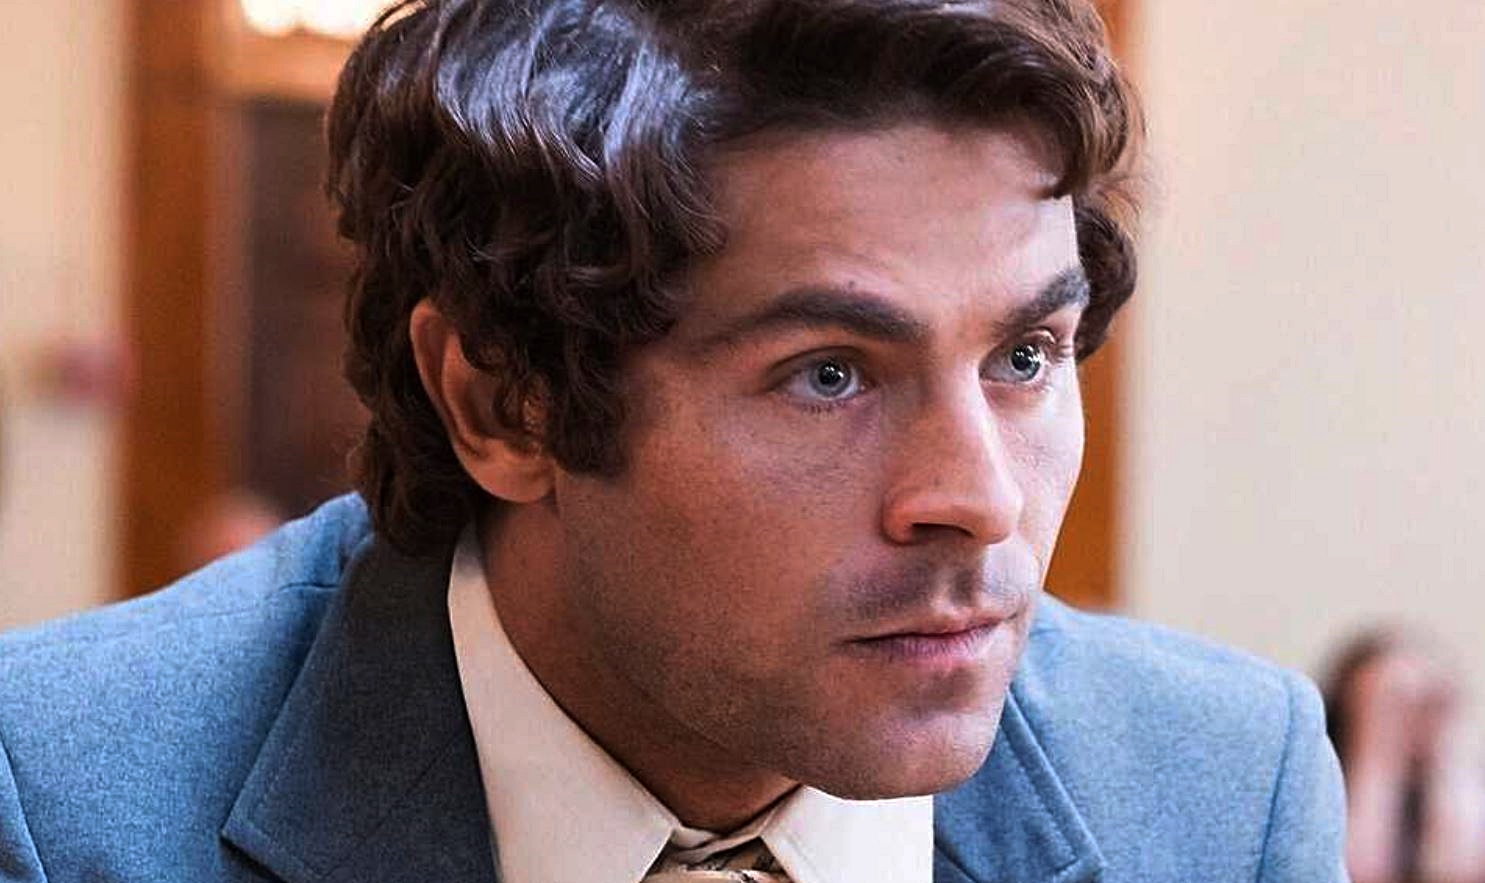 Zac Efron, an astonishing likeness as Ted Bundy in Extremely Wicked, Shockingly Evil and Vile (2019)